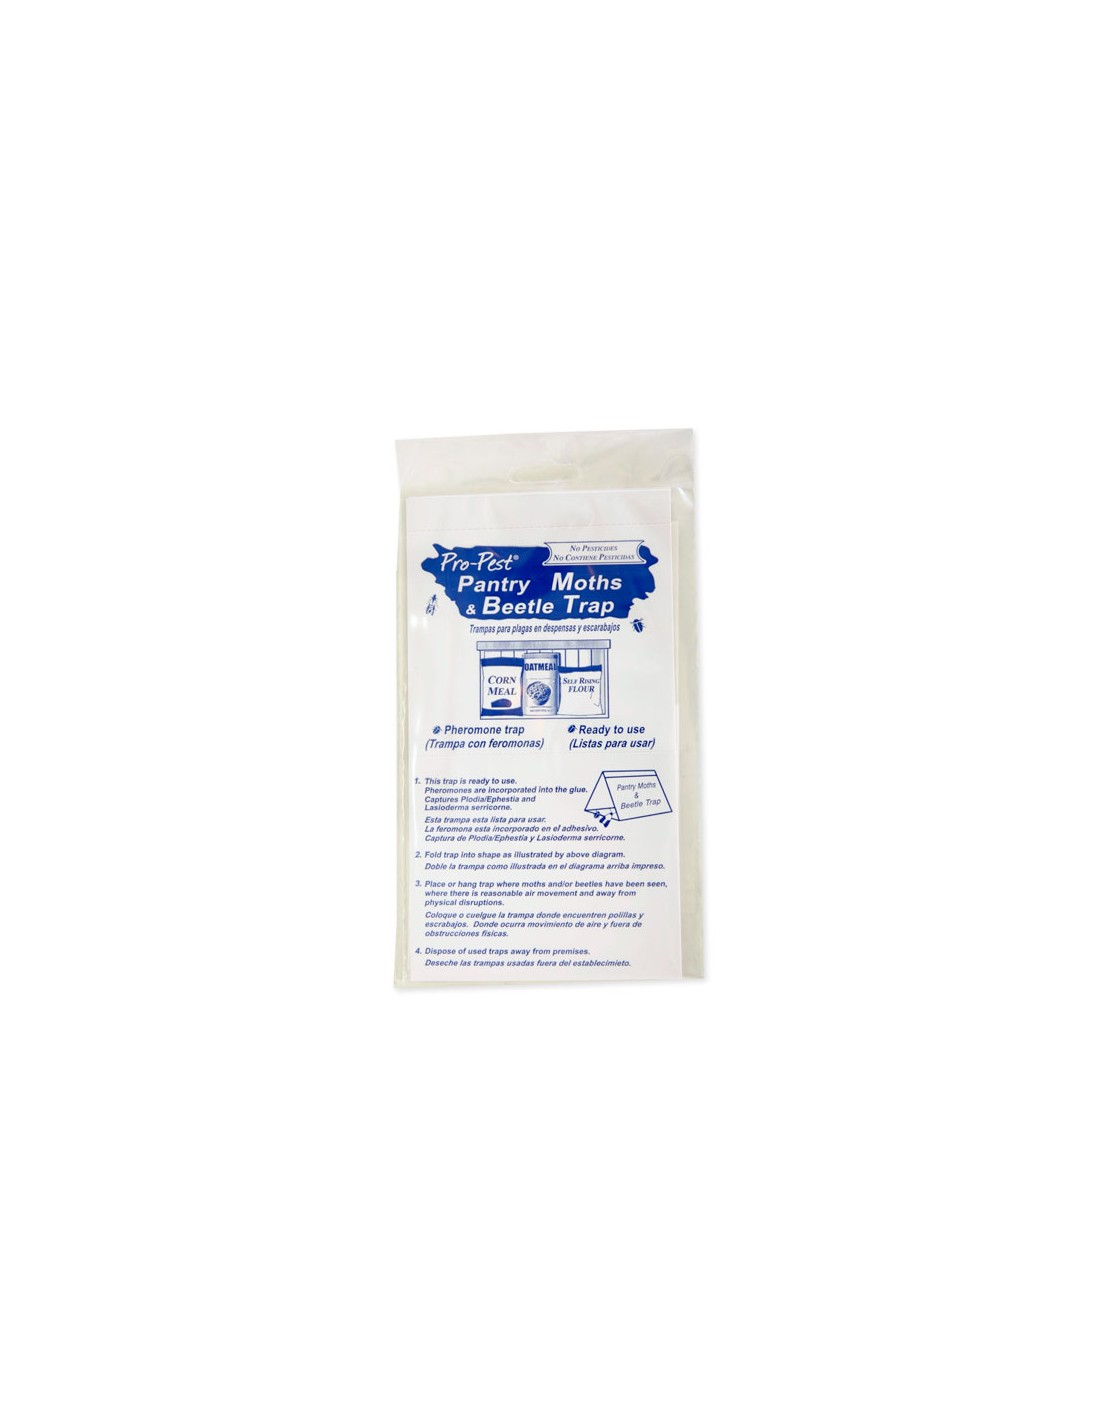 I purchased the Pro-Pest Pantry Moths & Beetle Trap for red flour beetles and they didn't work.